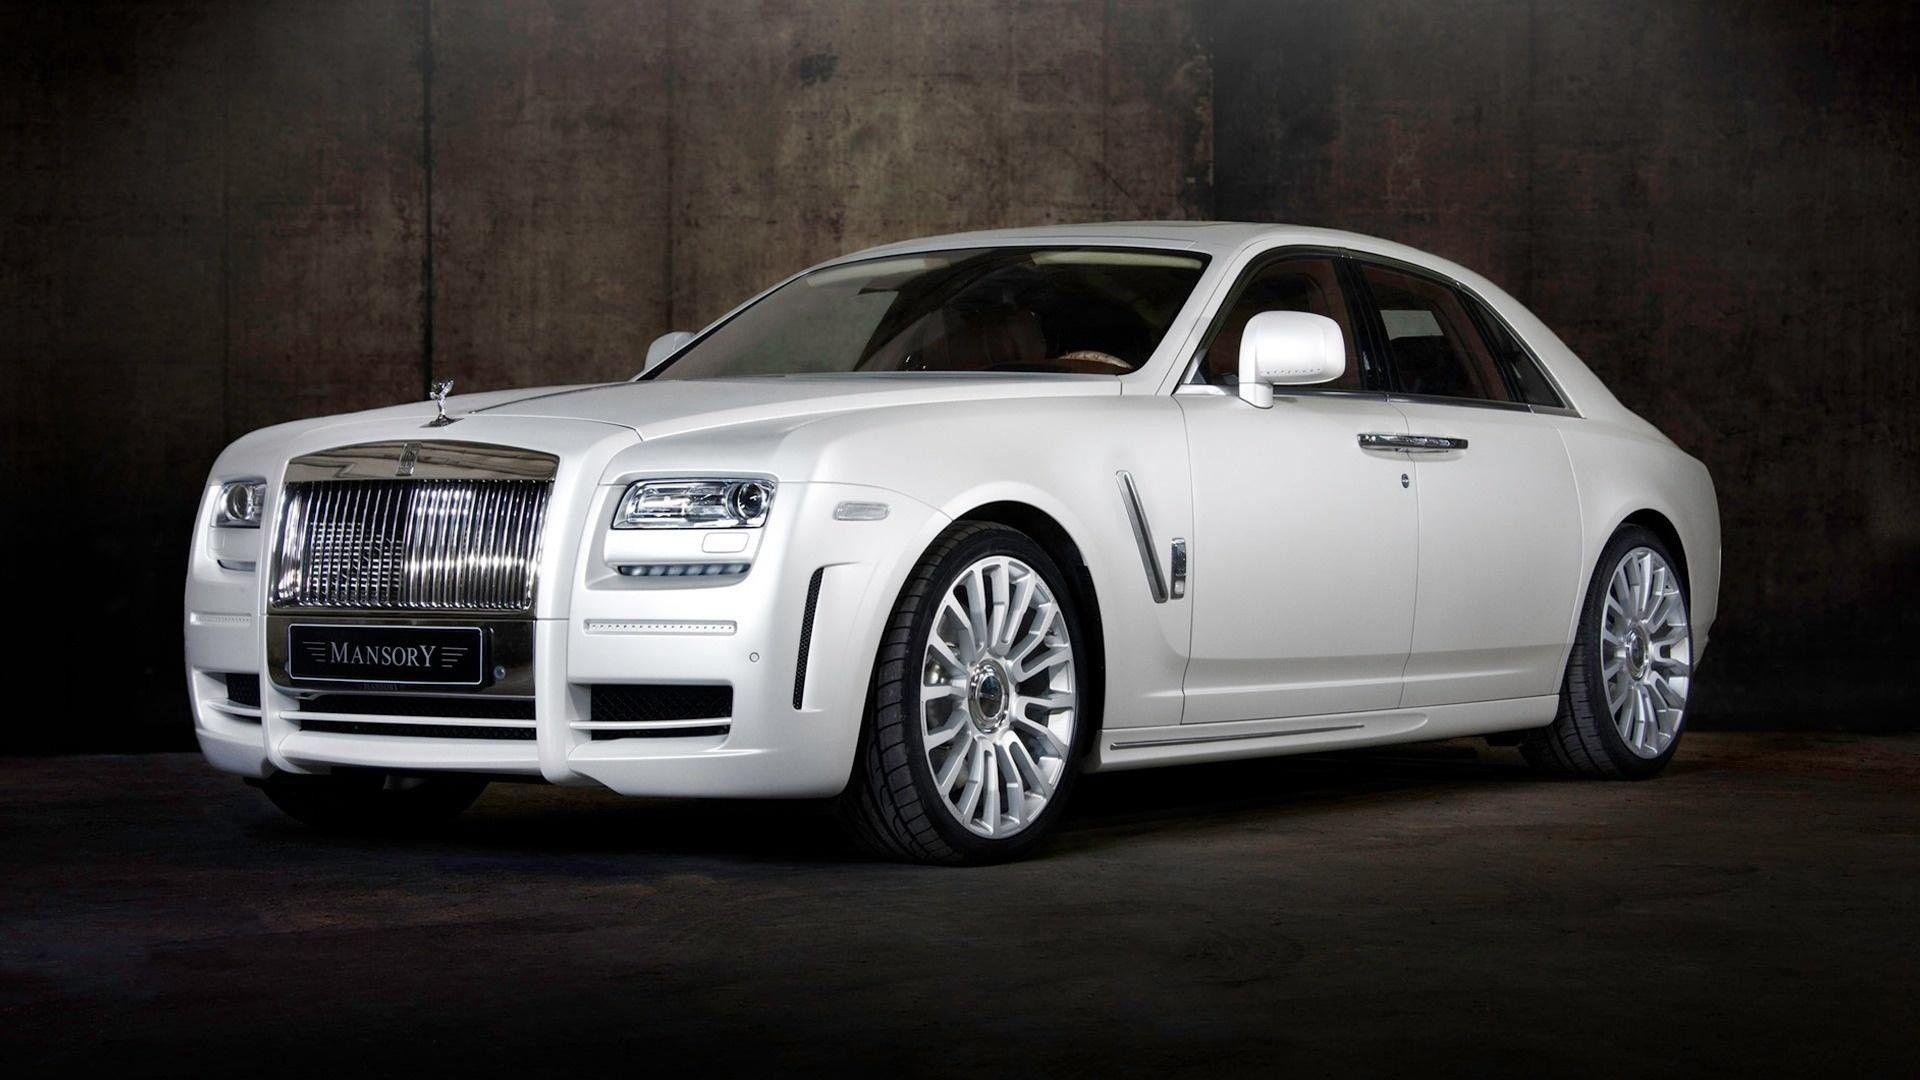 Rolls Royce Cars Wallpapers Wallpaper Cave